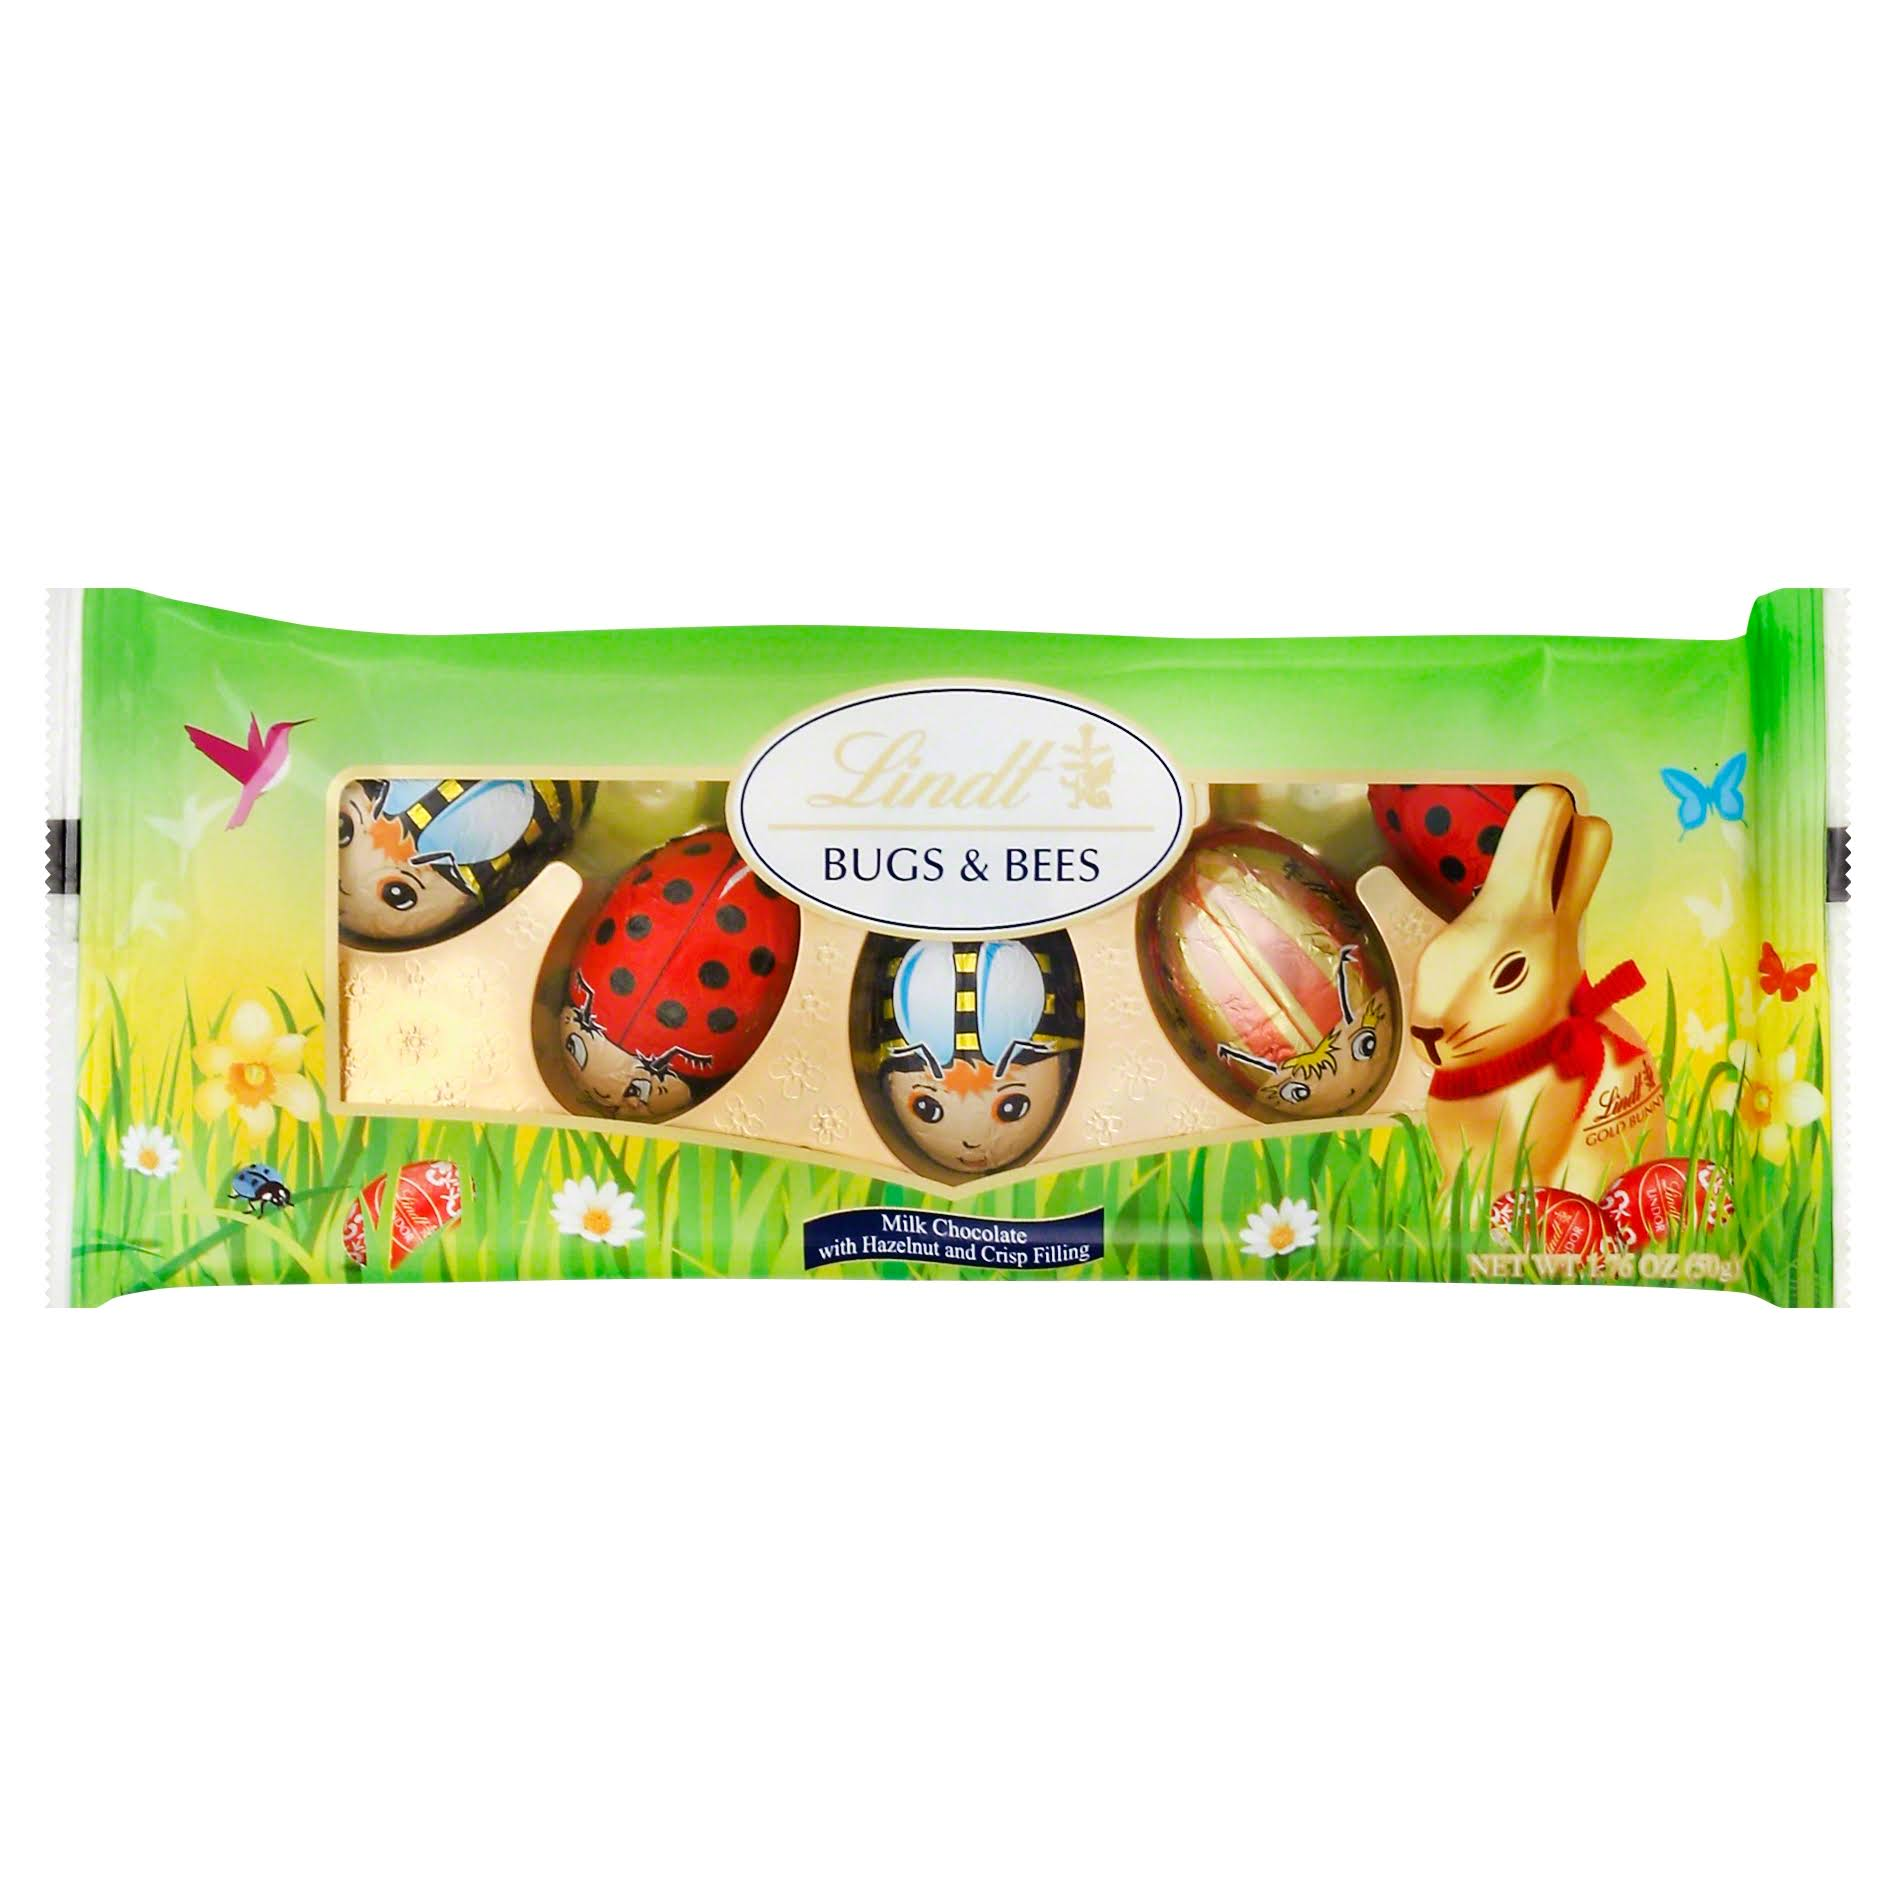 Lindt Bugs & Bees Milk Chocolate - With Hazelnut and Crisp Filling, 5ct